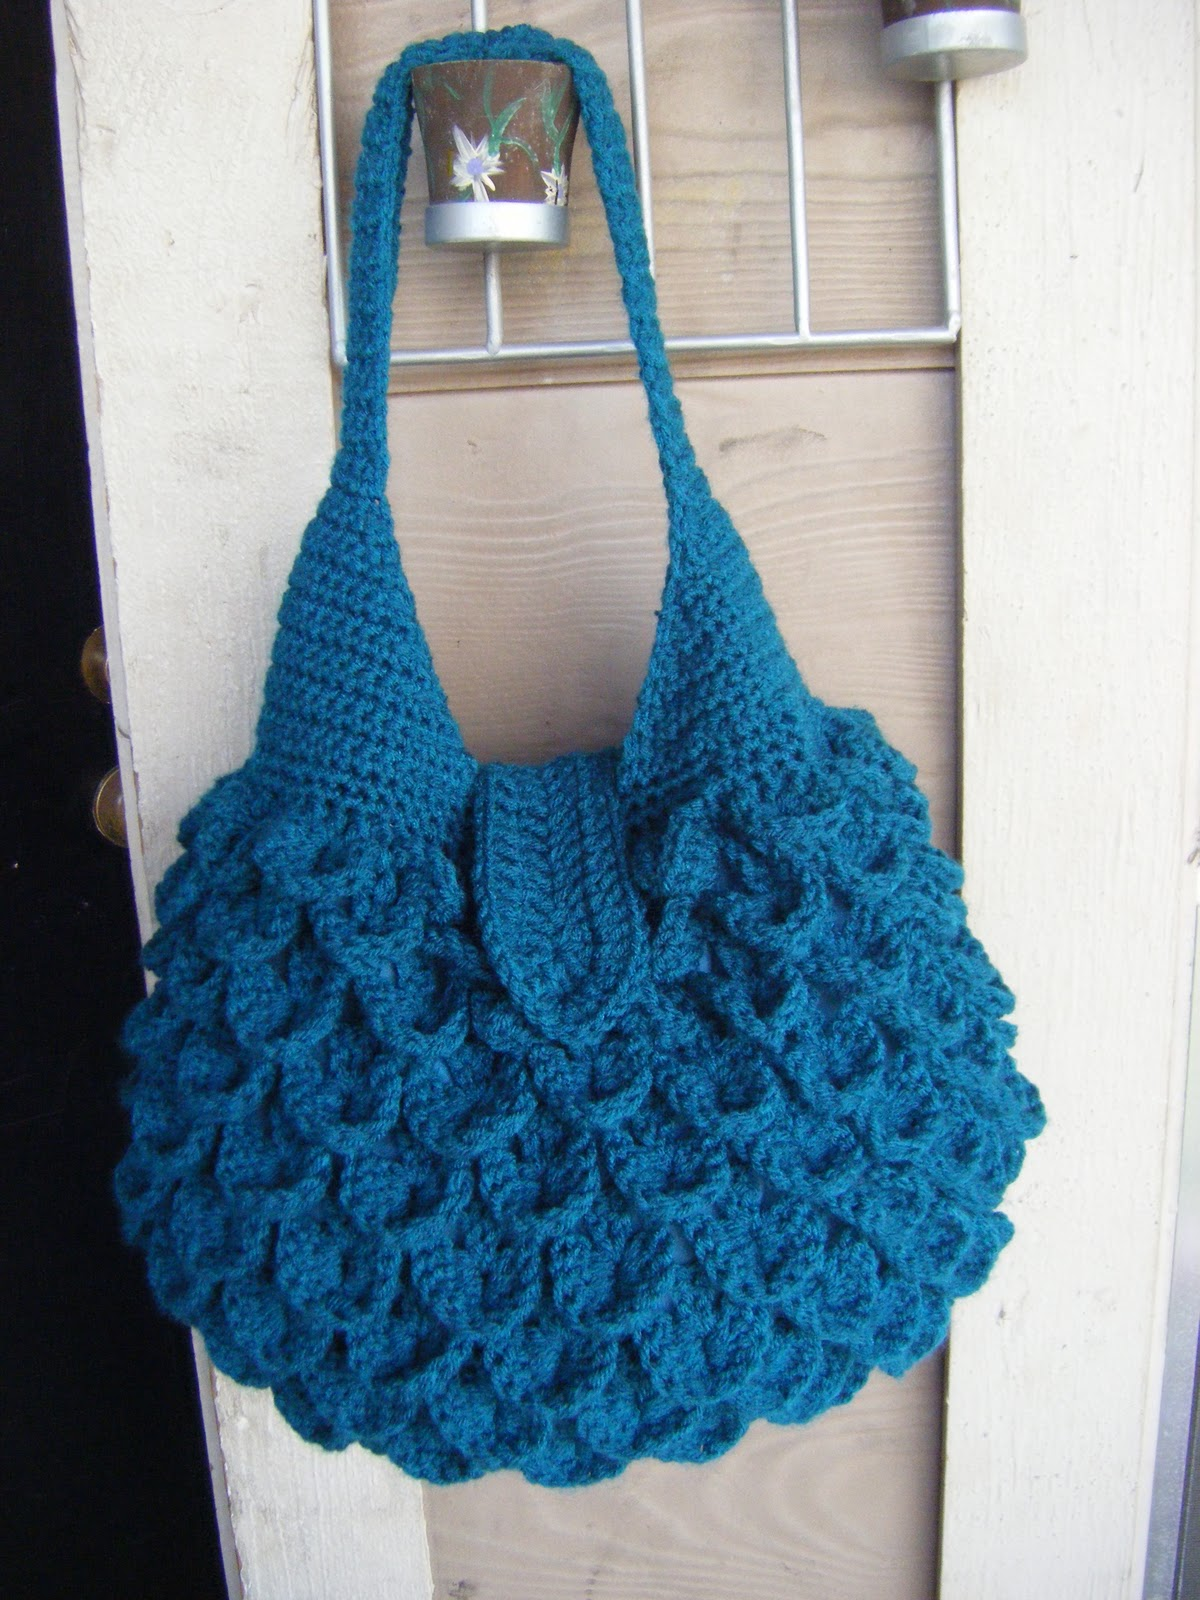 Free Crochet Patterns For Purses : Best Patterns: Crocodile Crochet Bag PATTERN